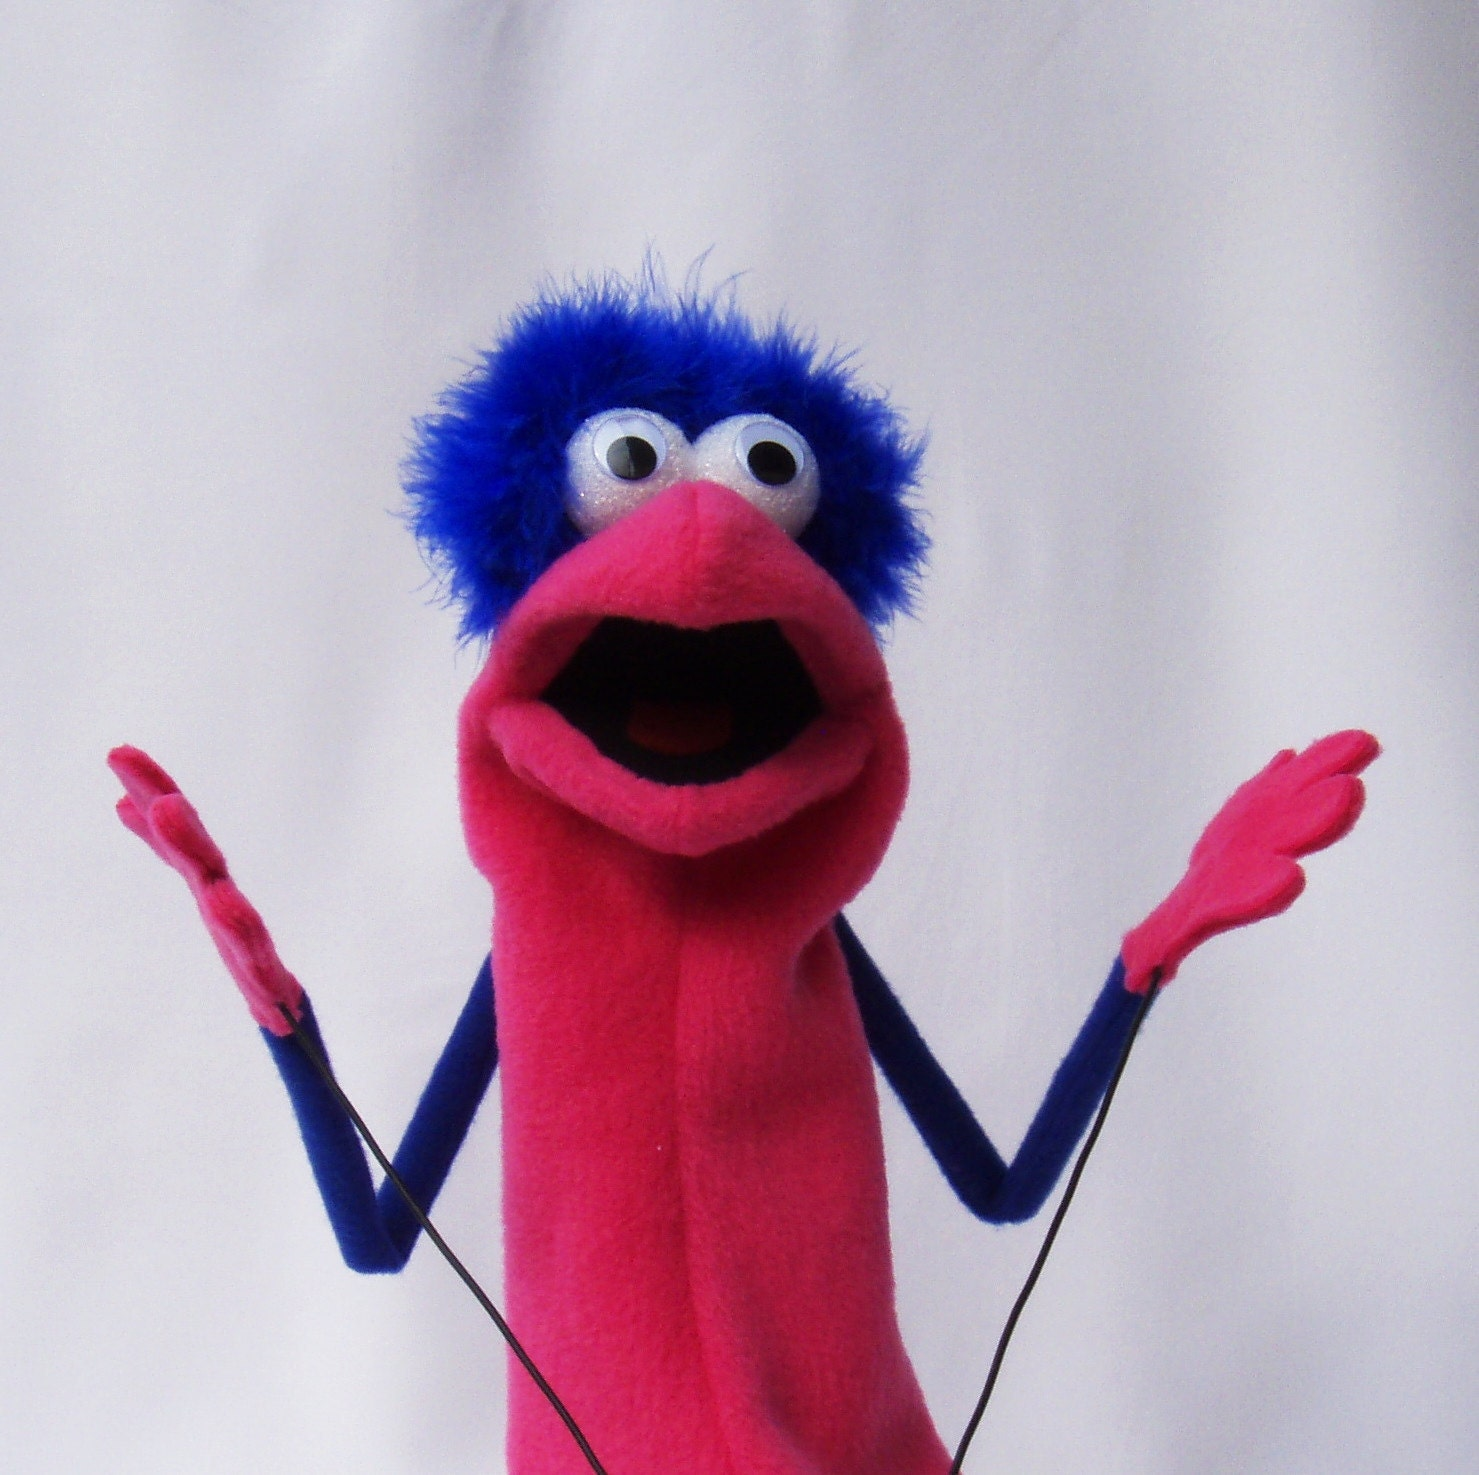 Hand puppet with rod arms pink and blue